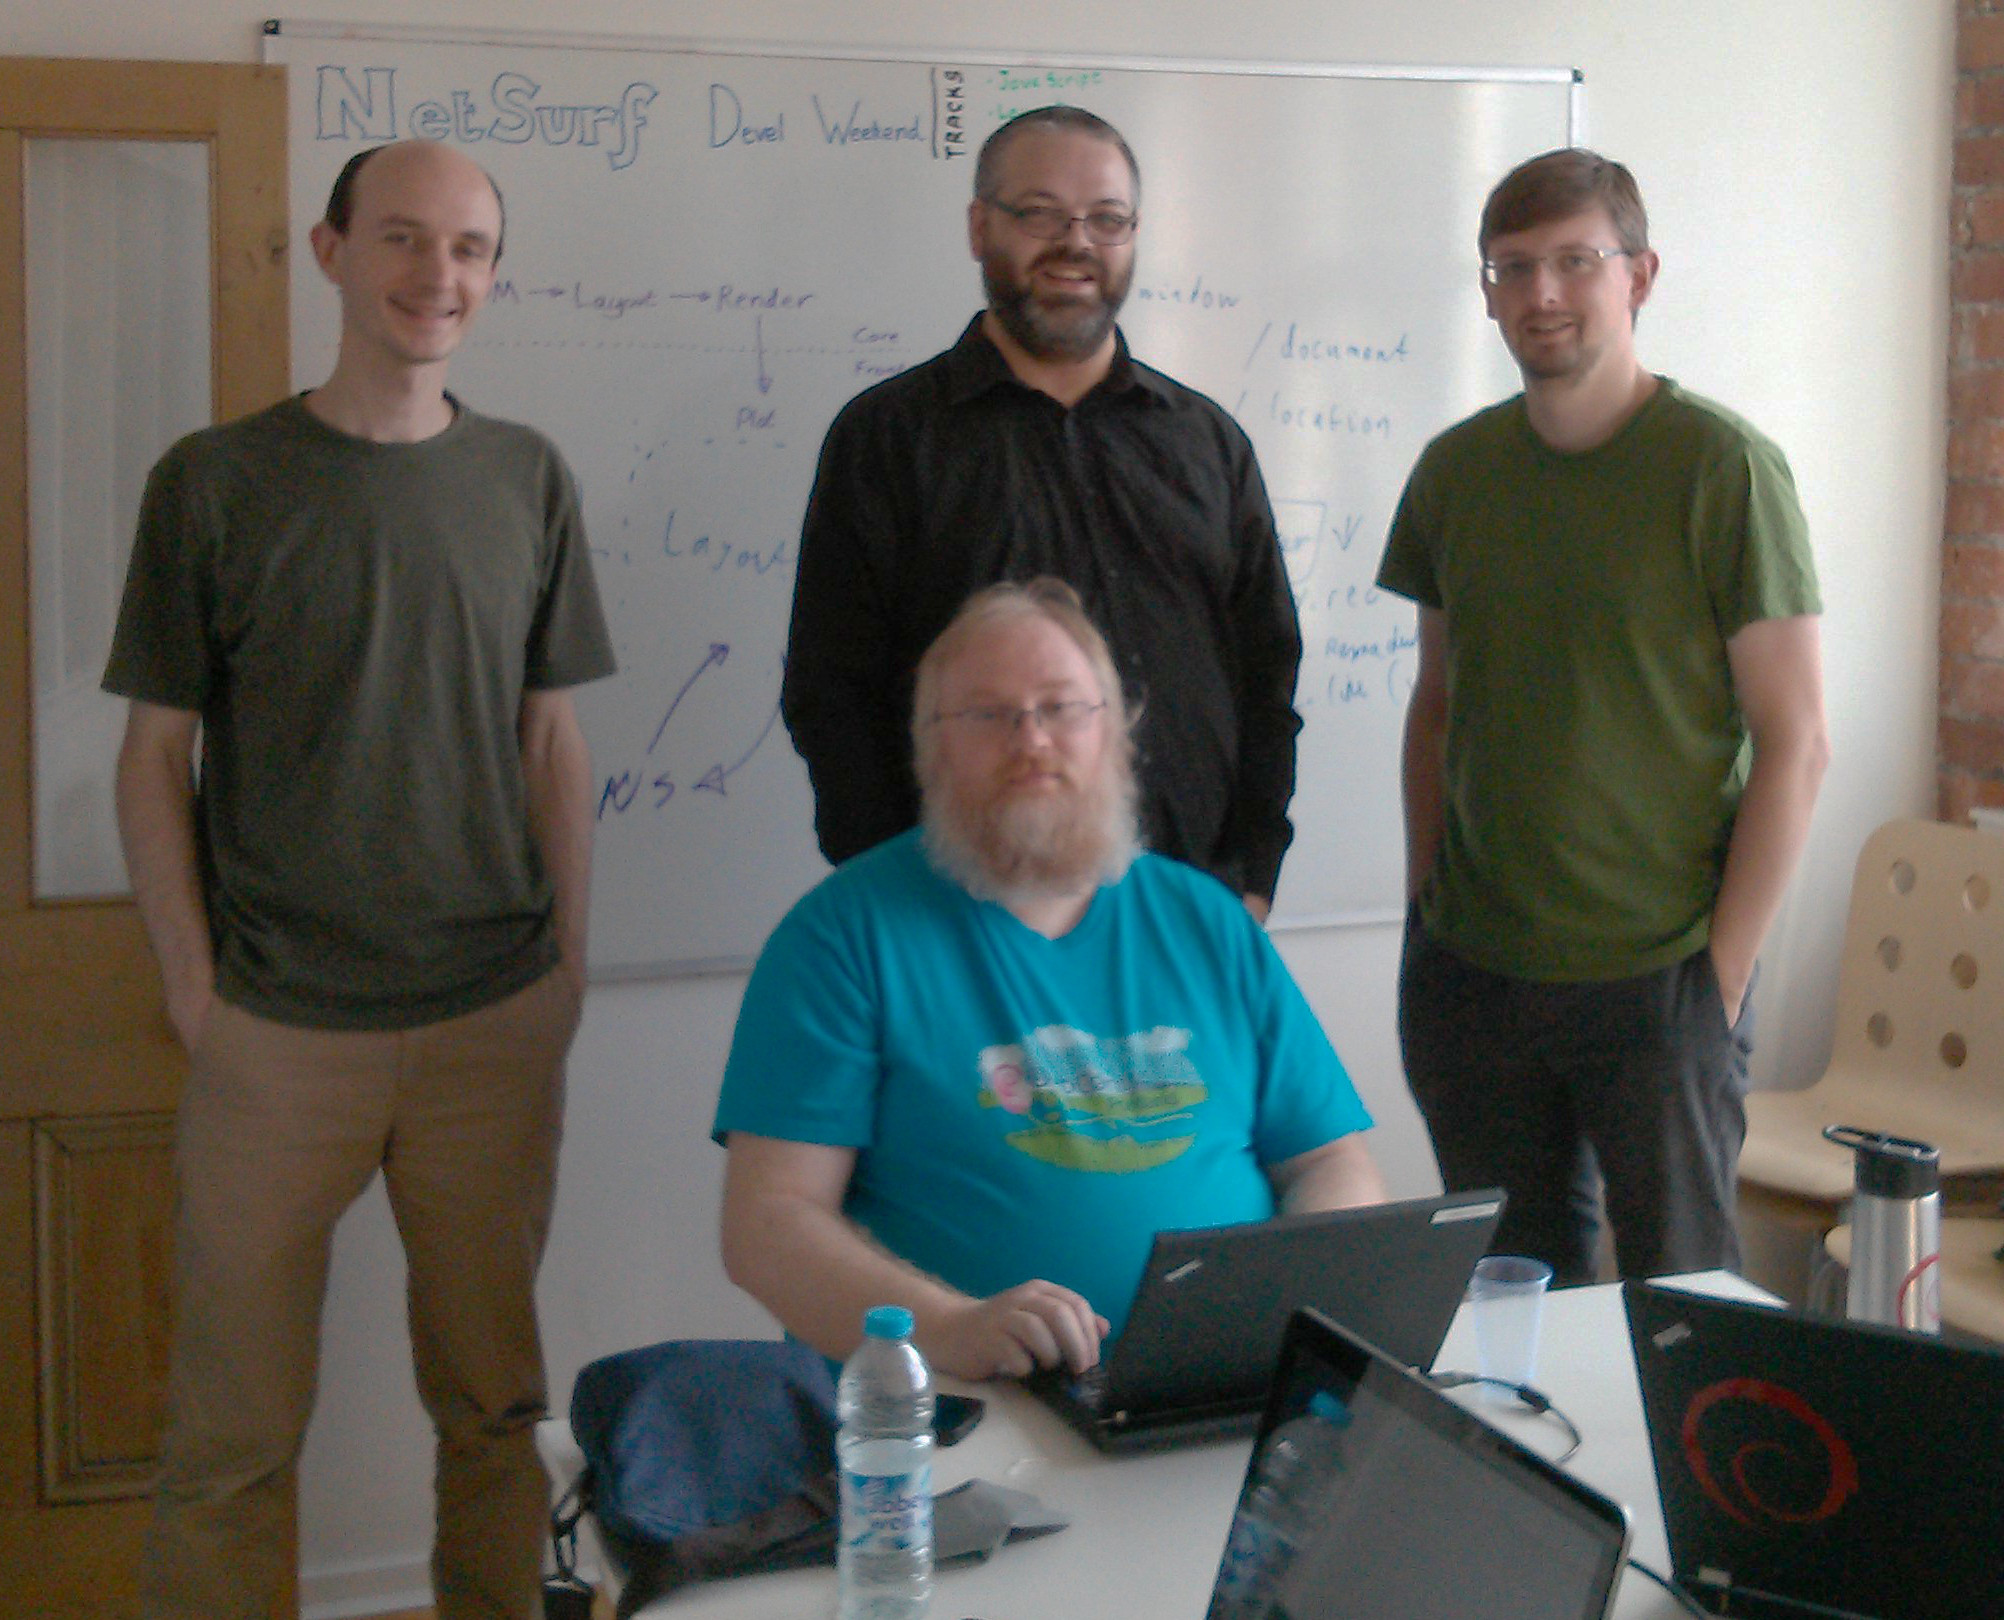 Michael Drake, Vincent Sanders, John-Mark Bell and Daniel Silverstone at the Codethink manchester offices